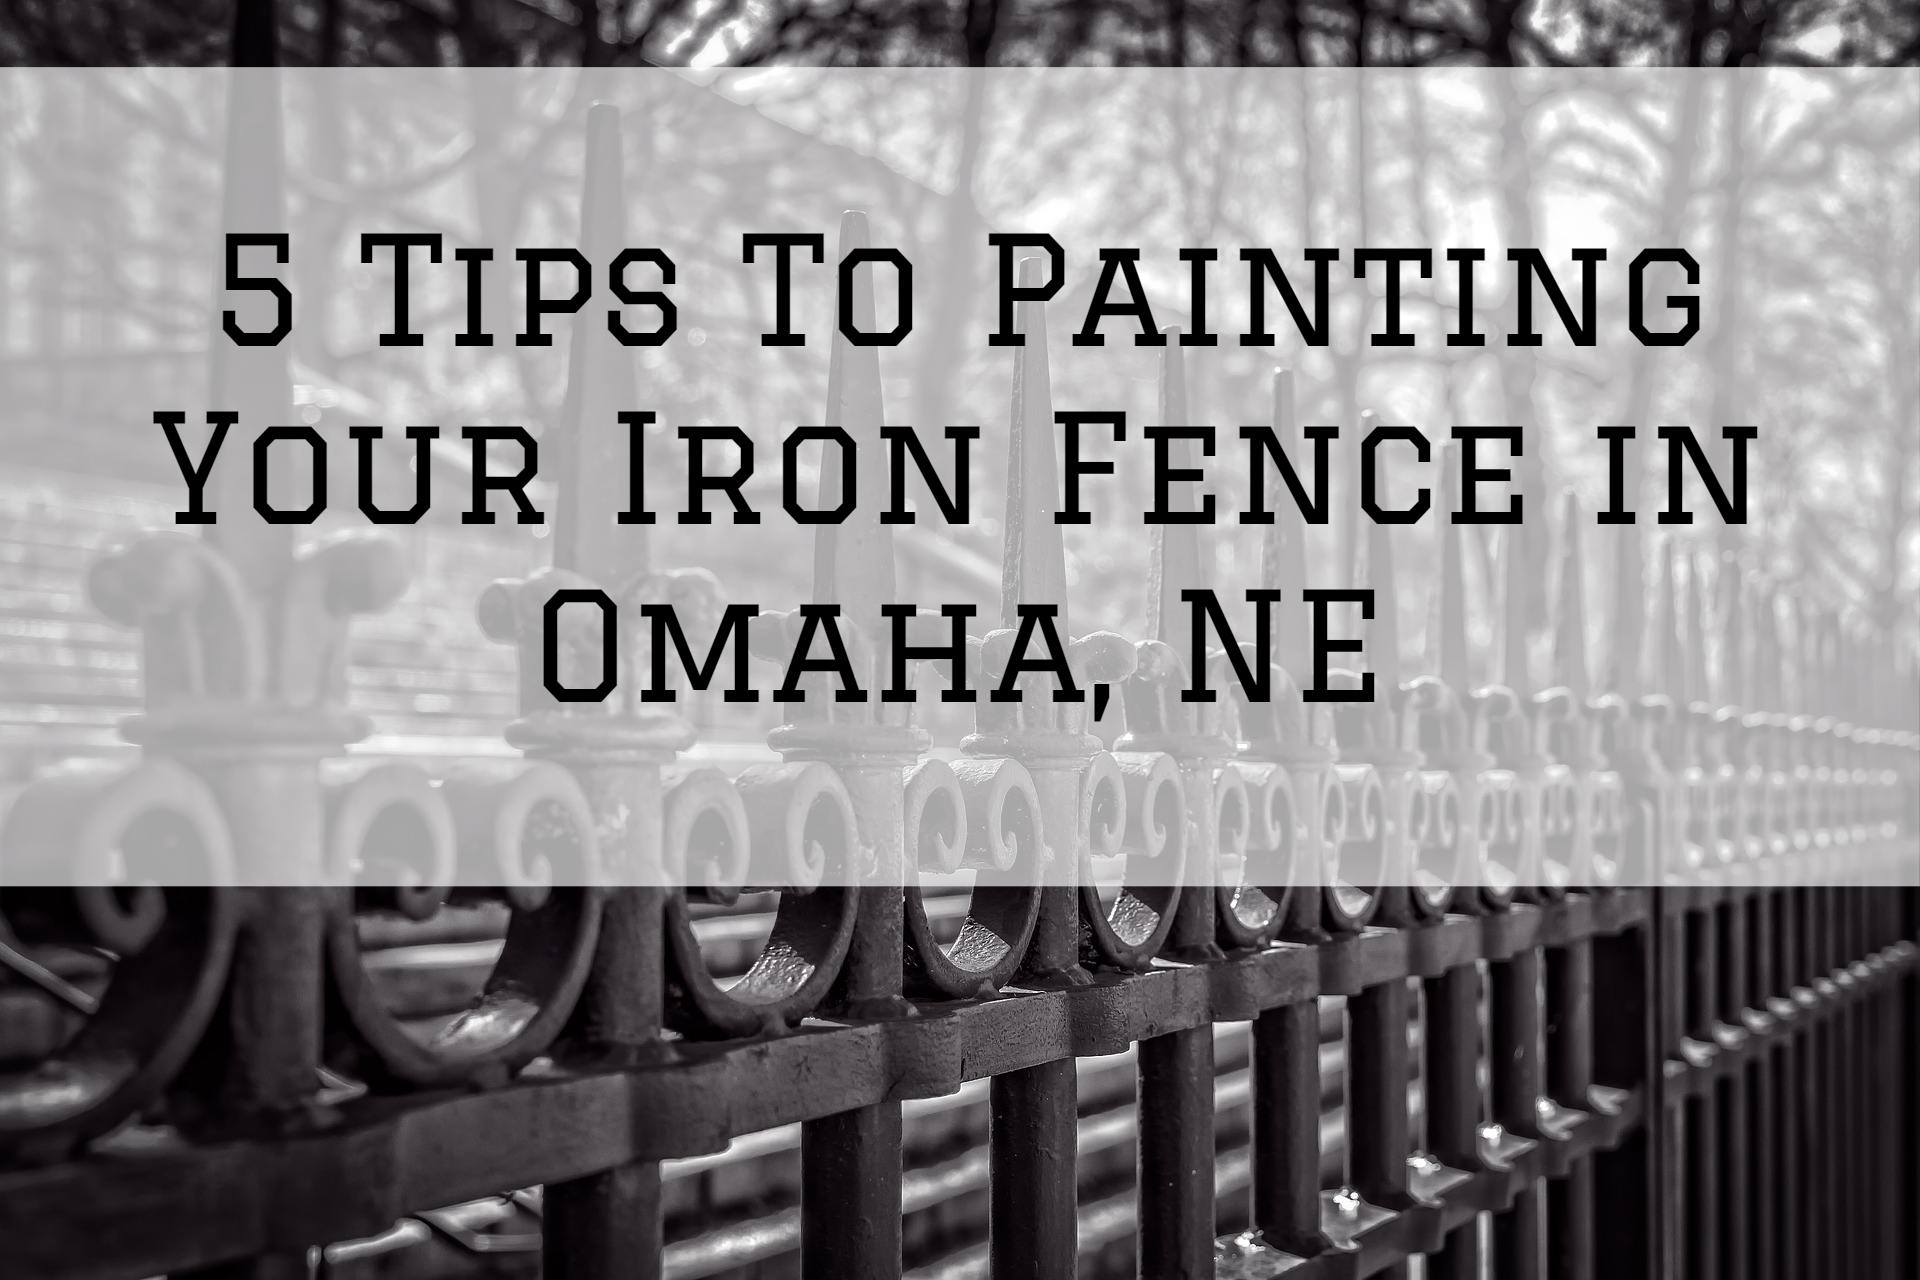 5 Tips To Painting Your Iron Fence in Omaha, NE